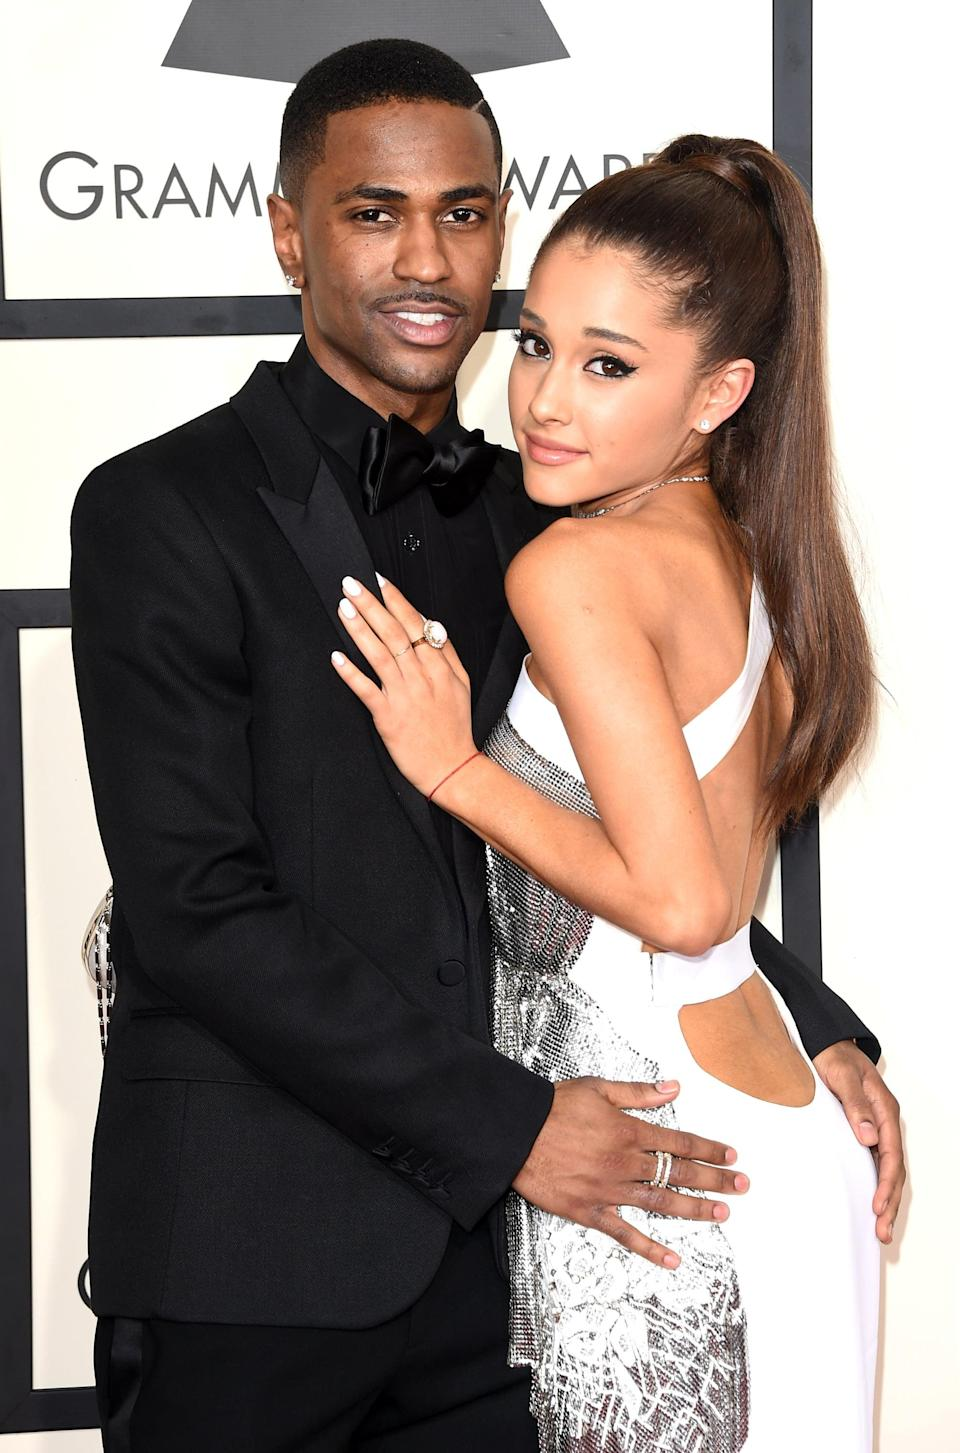 """<p>Big Sean struck up a romance with Ariana after calling off <a href=""""https://www.usmagazine.com/celebrity-news/news/naya-rivera-and-big-sean-call-off-engagement-201494/"""" class=""""link rapid-noclick-resp"""" rel=""""nofollow noopener"""" target=""""_blank"""" data-ylk=""""slk:his wedding to Naya Rivera"""">his wedding to Naya Rivera</a> in 2014. The pair made <a href=""""https://www.popsugar.com/celebrity/Ariana-Grande-Big-Sean-Holding-Hands-VMAs-35553023"""" class=""""link rapid-noclick-resp"""" rel=""""nofollow noopener"""" target=""""_blank"""" data-ylk=""""slk:their public debut"""">their public debut</a> as a couple when they were spotted holding hands at the MTV VMAs, and the singer even made a cameo in <a href=""""https://www.popsugar.com/celebrity/Ariana-Grande-Big-Sean-Kiss-Patience-Video-36843890"""" class=""""link rapid-noclick-resp"""" rel=""""nofollow noopener"""" target=""""_blank"""" data-ylk=""""slk:Big Sean's &quot;Patience&quot; video"""">Big Sean's """"Patience"""" video</a>. </p> <p>However, eight months later, Ariana and Big Sean called it quits in April 2015. """"They both deeply care for each other and remain close friends,"""" their reps told <strong>Us Weekly</strong> in a joint statement. """"We kindly ask that the media respect their wish for privacy regarding this personal matter at this time."""" While neither Big Sean nor Ariana ever revealed <a href=""""https://www.usmagazine.com/celebrity-news/news/ariana-grande-big-sean-split-after-8-months-of-dating-breakup-detail-2015204/?utm_source=popsugar.com&amp;utm_medium=referral&amp;utm_campaign=pubexchange_article"""" class=""""link rapid-noclick-resp"""" rel=""""nofollow noopener"""" target=""""_blank"""" data-ylk=""""slk:the reason for their breakup"""">the reason for their breakup</a>, sources said """"they made the decision to part ways because of their conflicting touring schedules.""""</p>"""